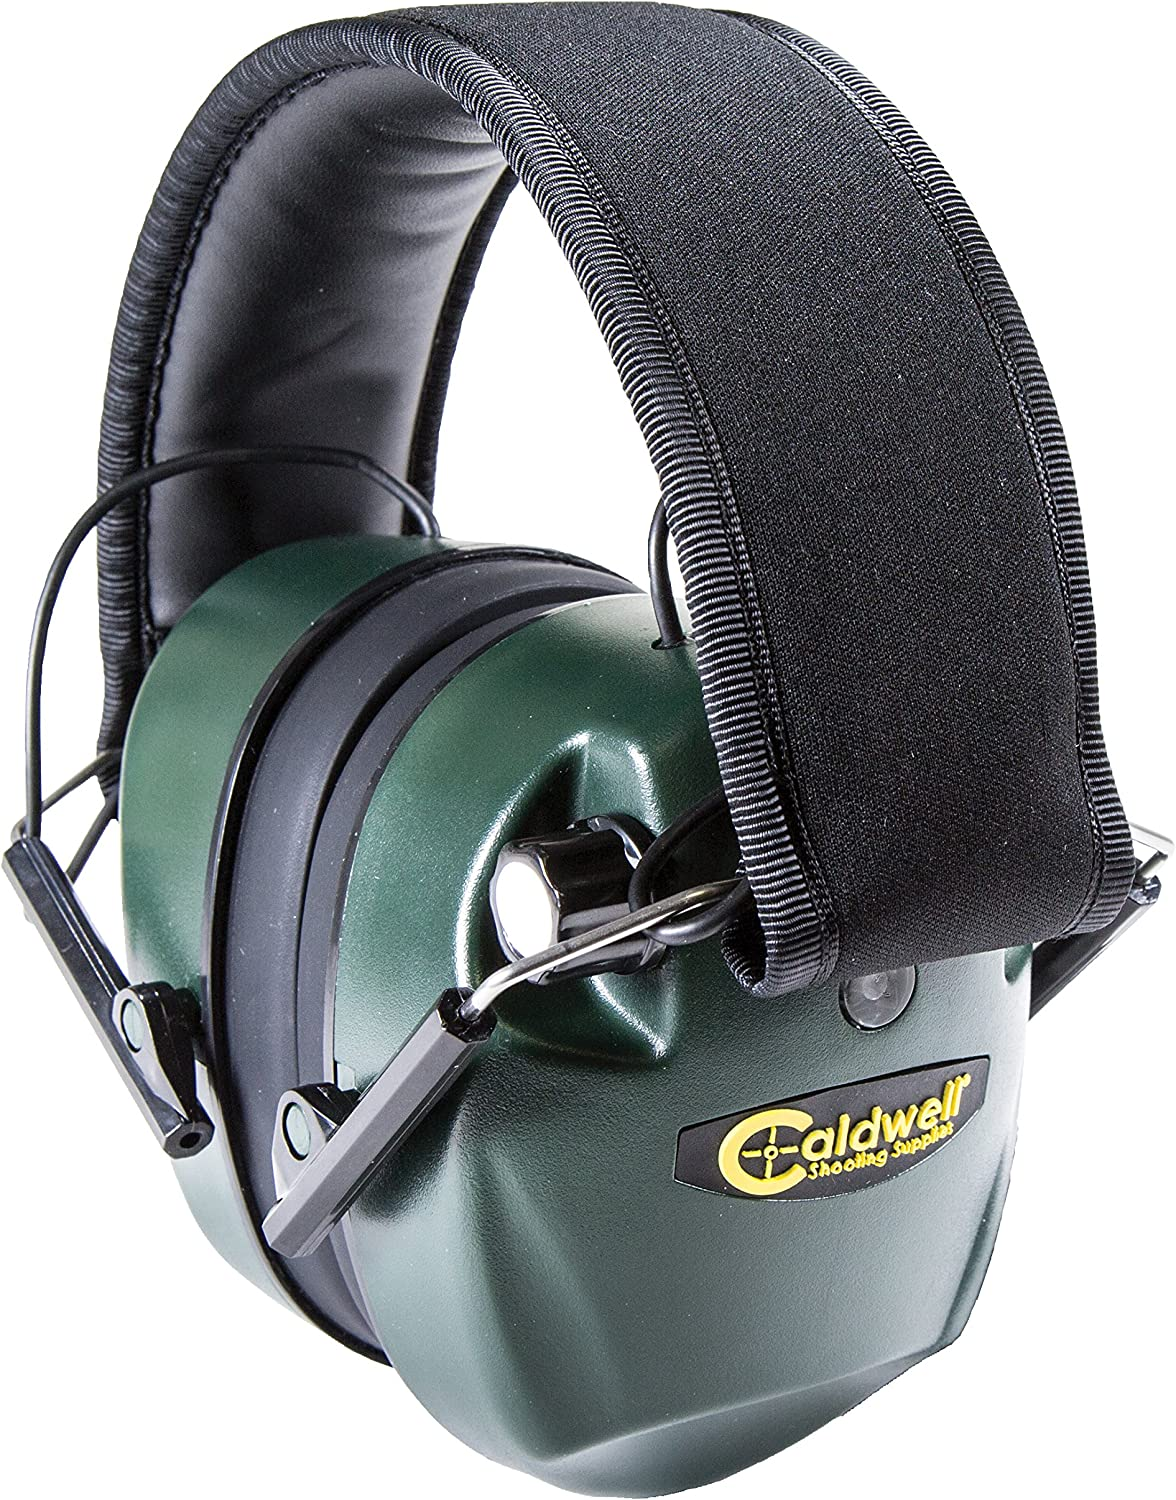 Caldwell E-Max - ADULT Green 21 Ranking TOP7 NRR Protect Price reduction Electronic Hearing